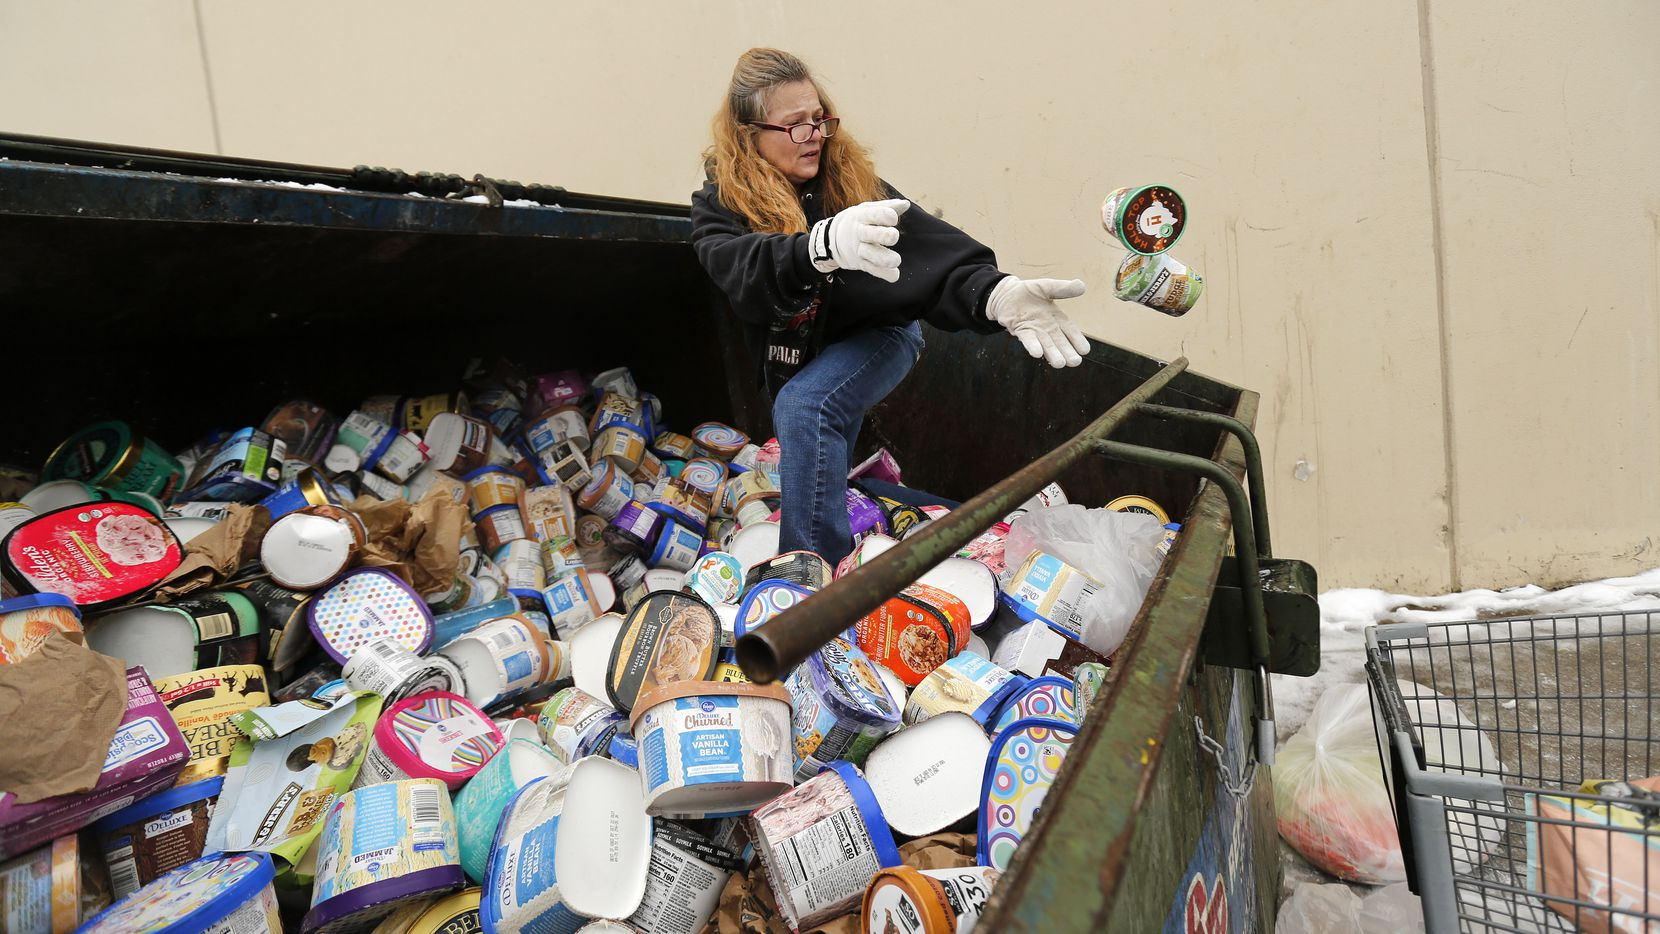 """After seeing a posting on Facebook, LaDonna (no last name given) drove from Johnson County to collect some of the ice cream thrown into dumpsters at a Southwest Arlington Kroger store on Wednesday. LaDonna said she's collecting the frozen goods for her neighbors. """"I do it because they would do it for me,"""" she said. The power was back Wednesday and the store was open again."""